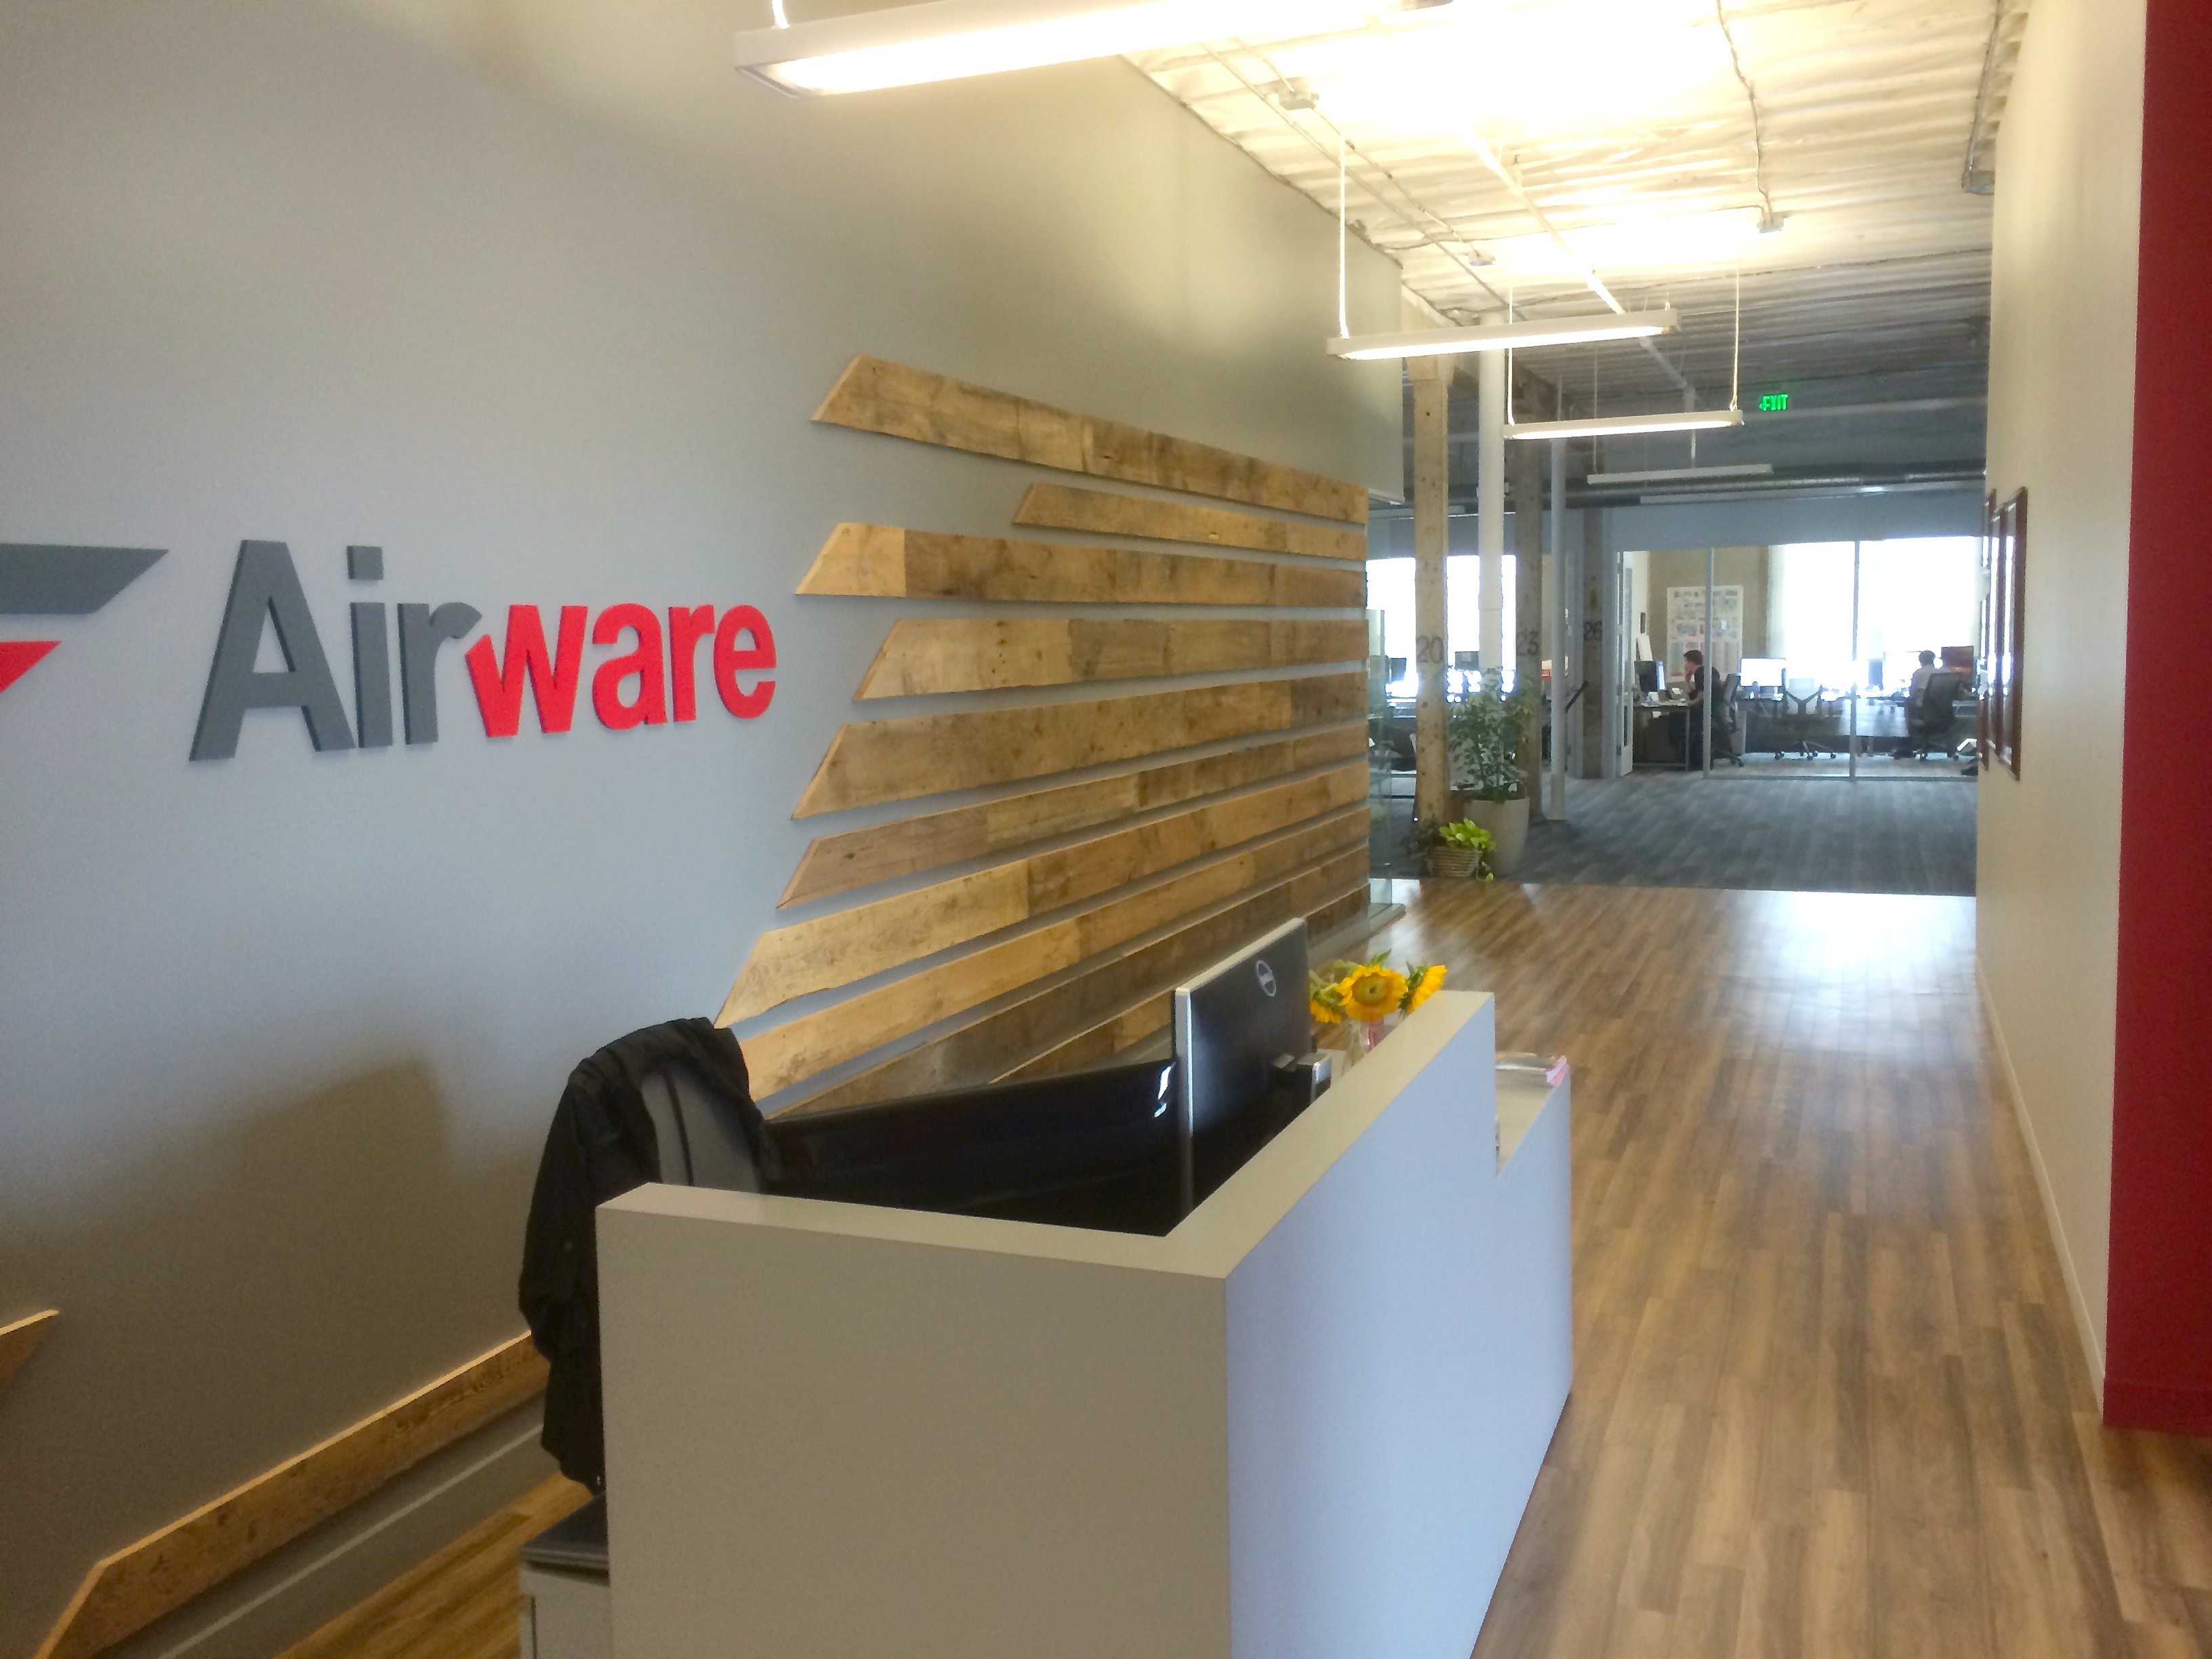 The Airware office in San Francisco's SoMa neighborhood. Airware makes and tests its hardware in the basement. Photo by Signe Brewster.